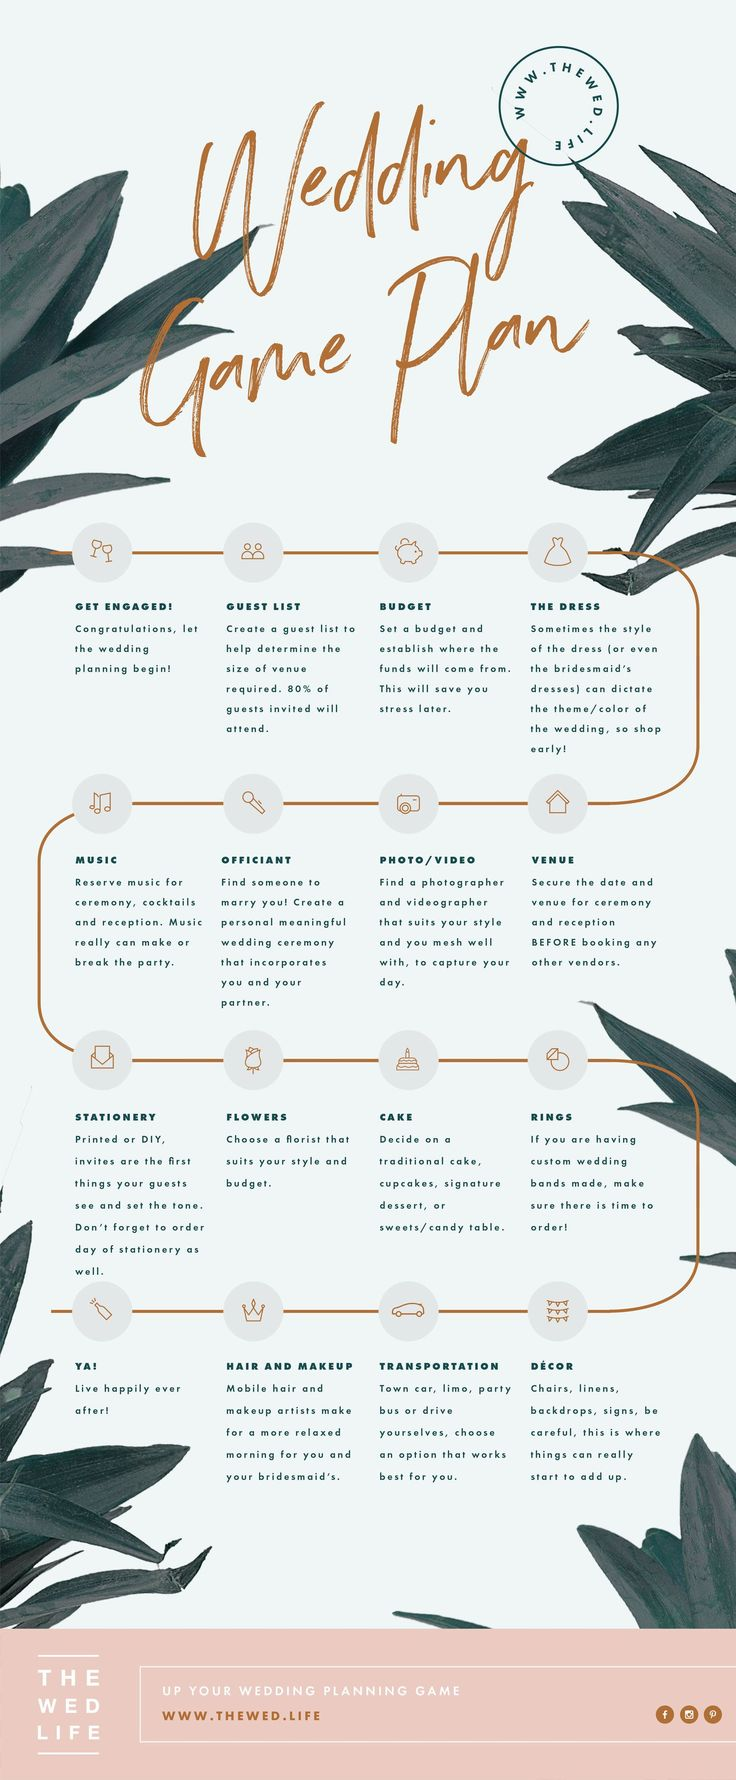 Another helpful timeline to help you with your wedding planning! #viewvenue www.agaveofsedona.com